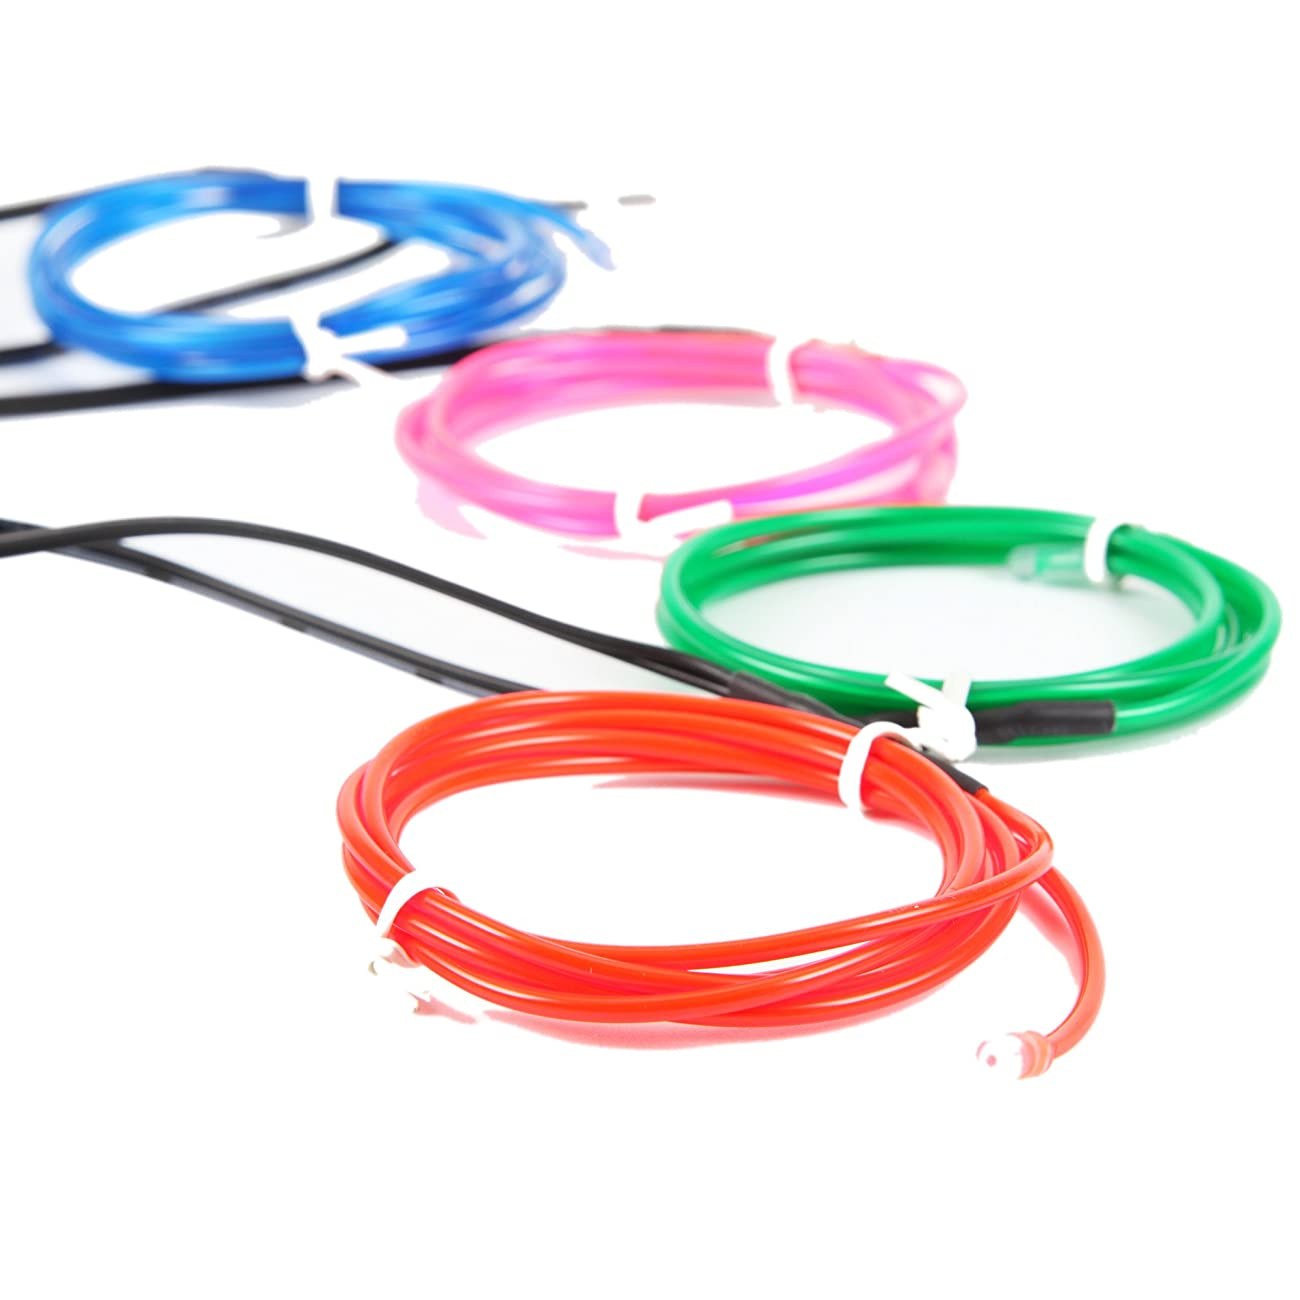 Exlight 5 X 1 Metre Neon Light El Wire- New Drive Electroluminescent Multiple Color-Set of 5(Blue, Green, Red, Pink, and White) 3